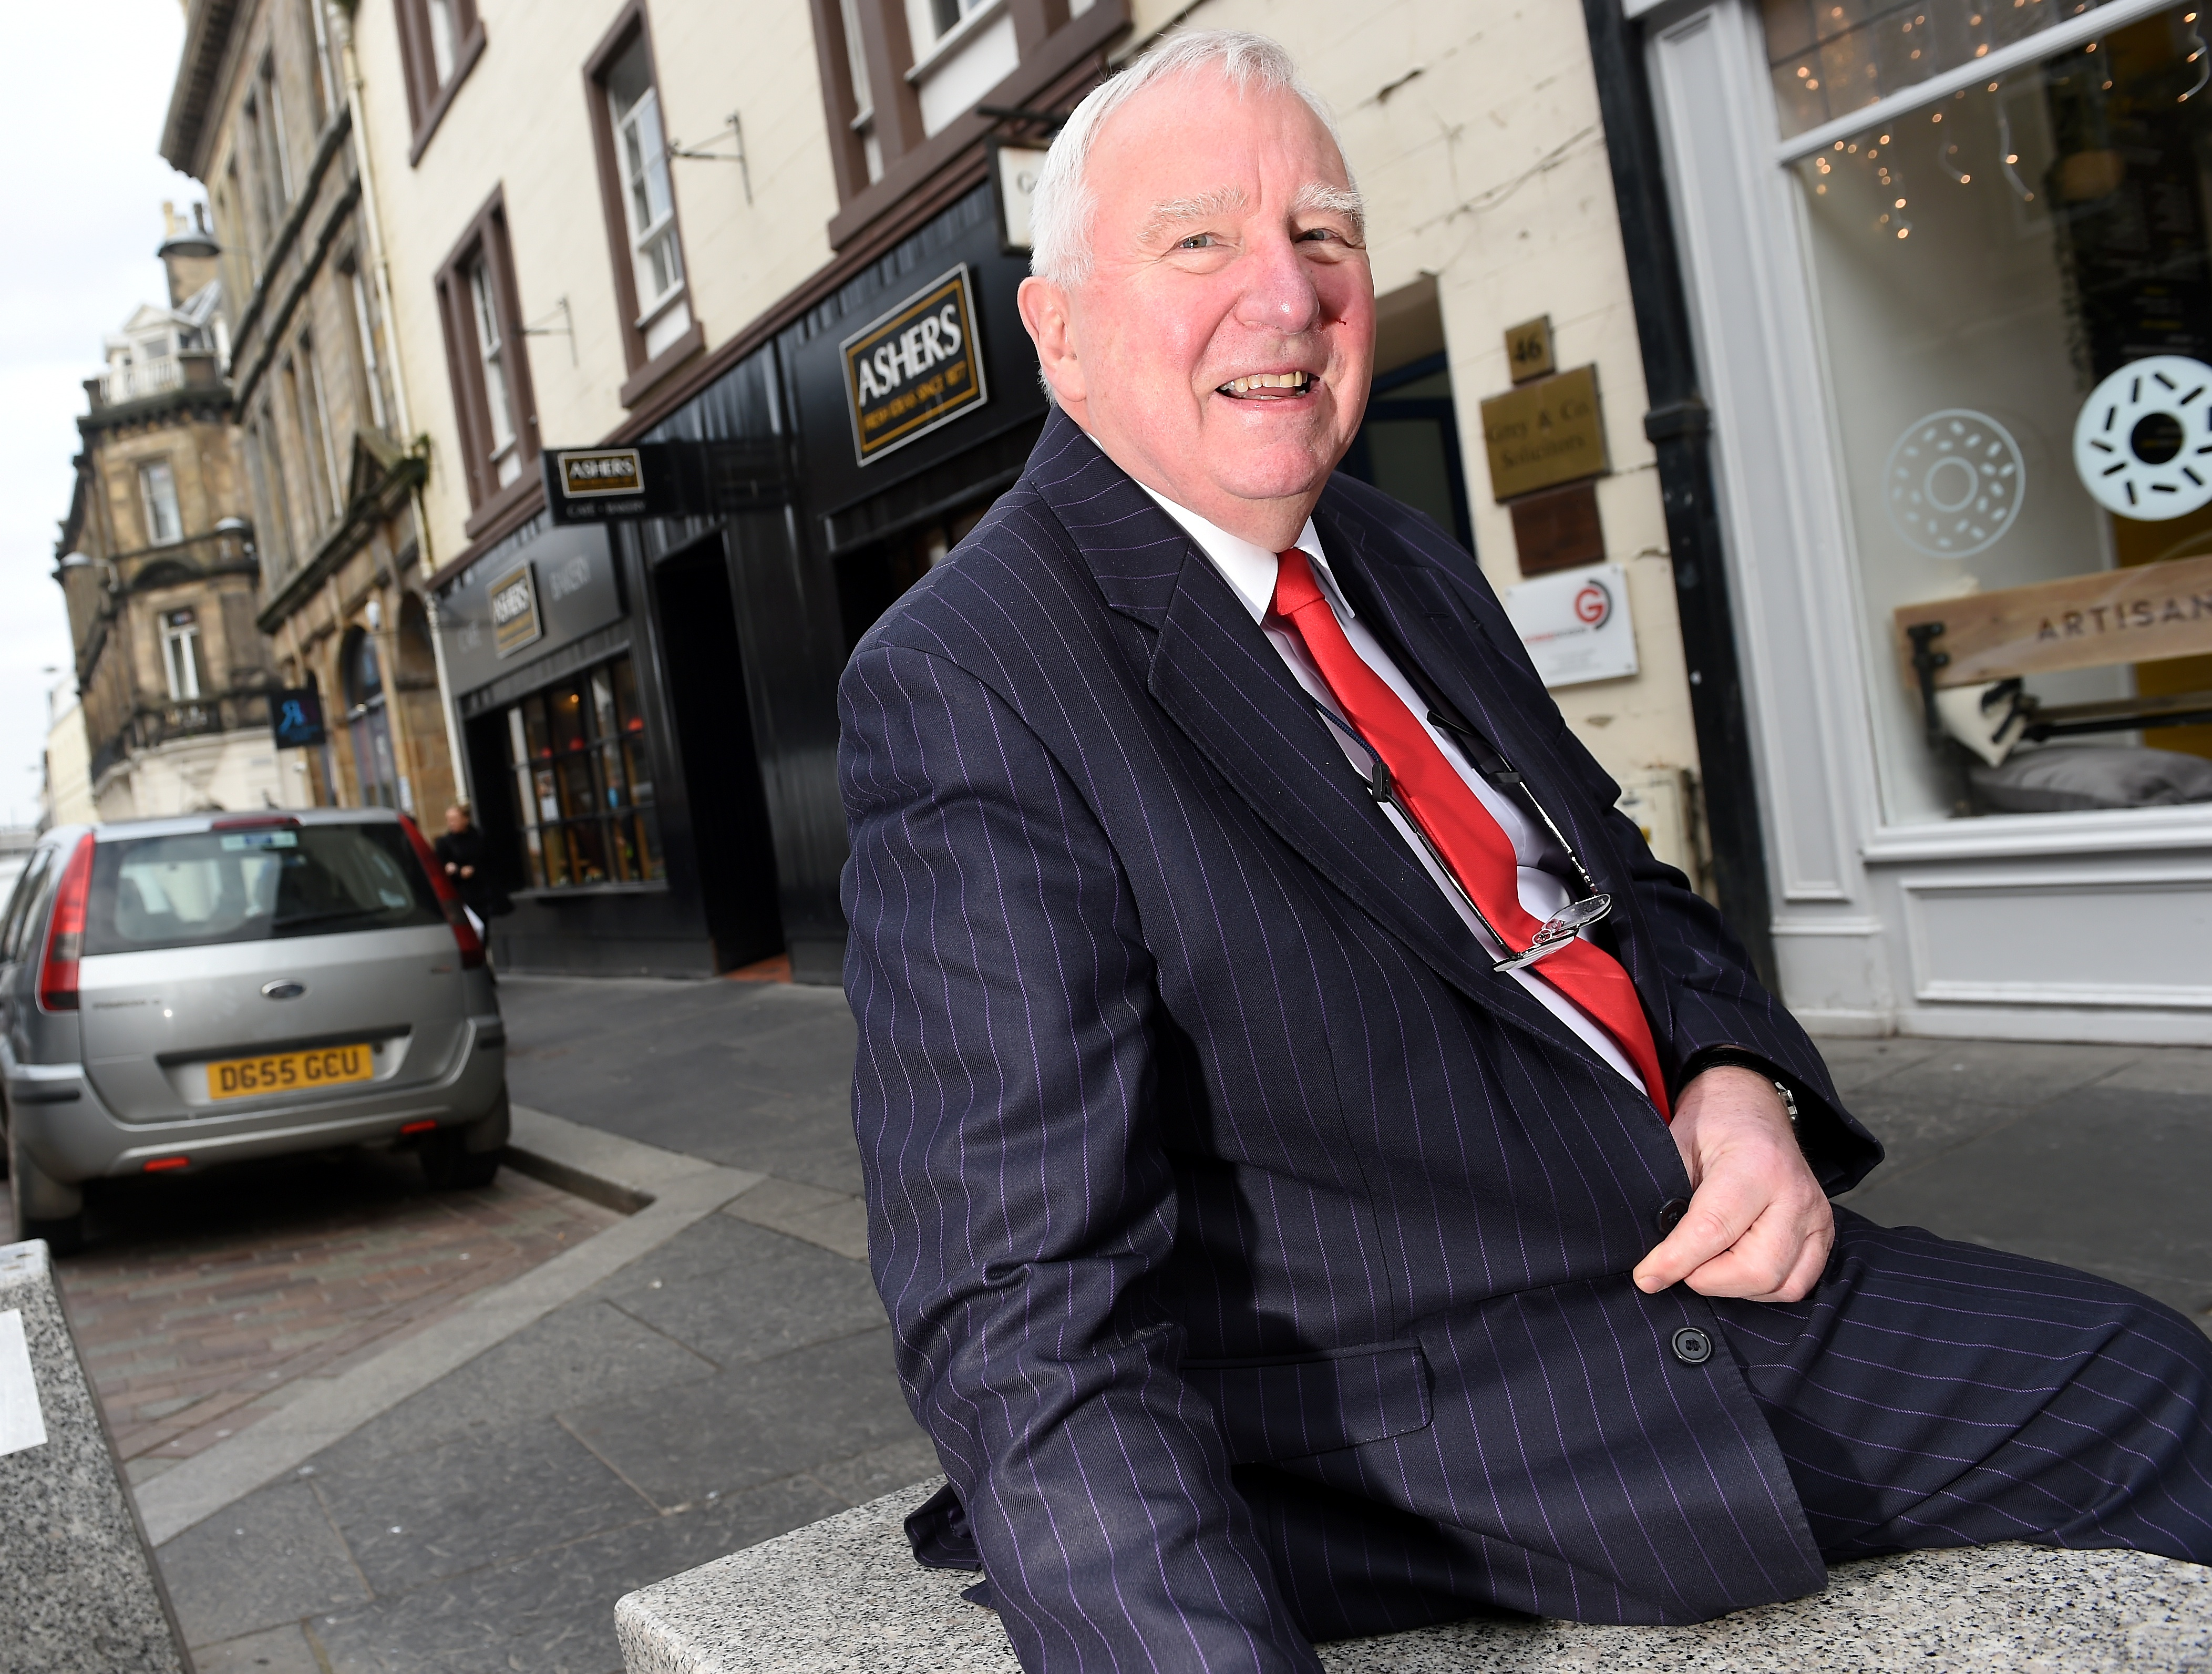 Inverness BID Manager Mike Smith at the current Ashers Bakery, shop which is moving from Church Street and is to be replaced by the new Brewdog pub. Picture by Sandy McCook